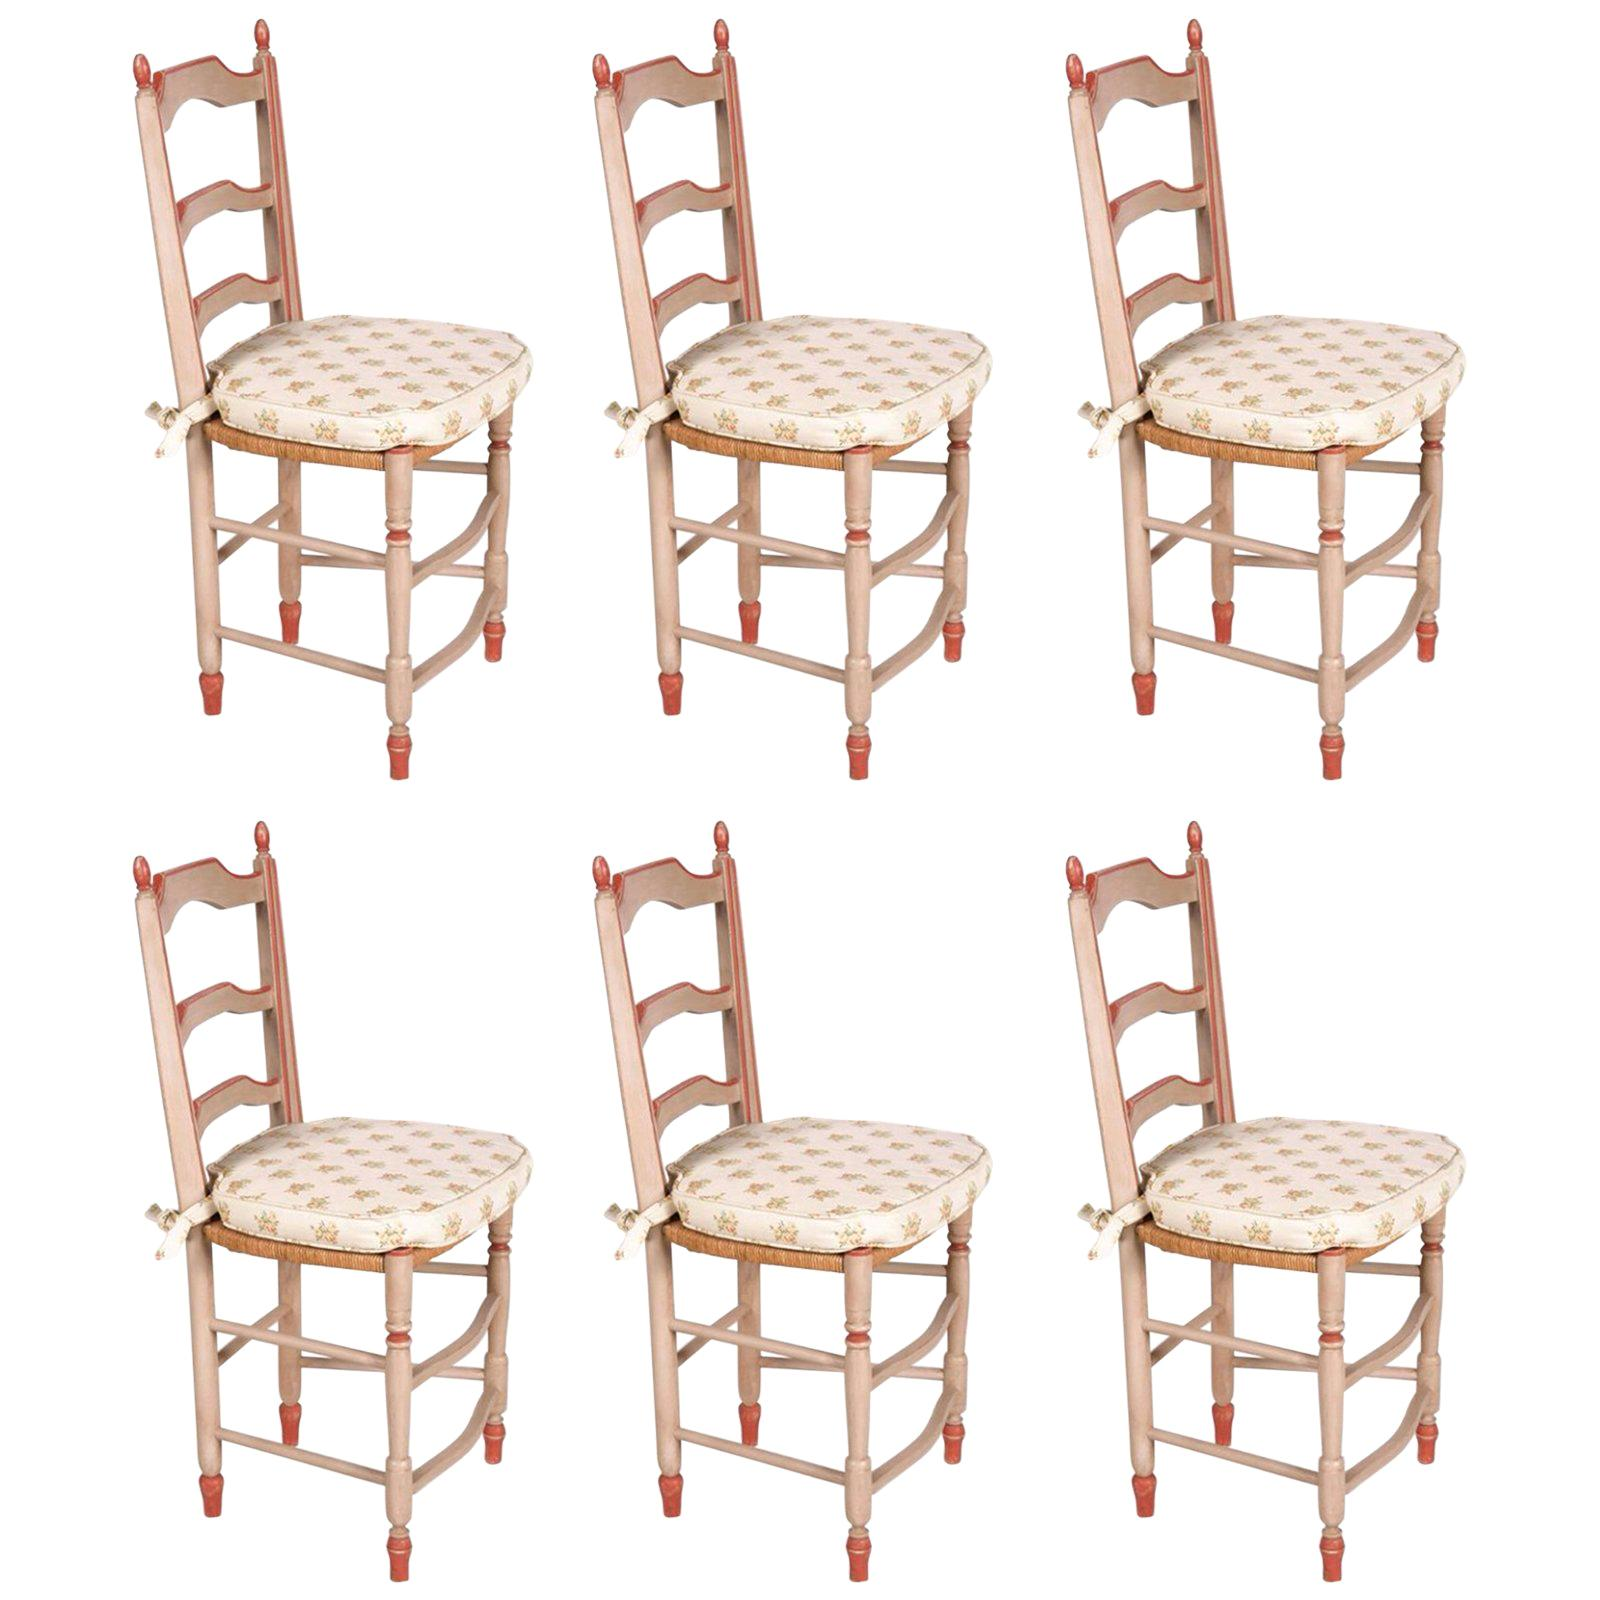 19th Century French Hand Painted Set of Six Dining Chairs in Provincial Style